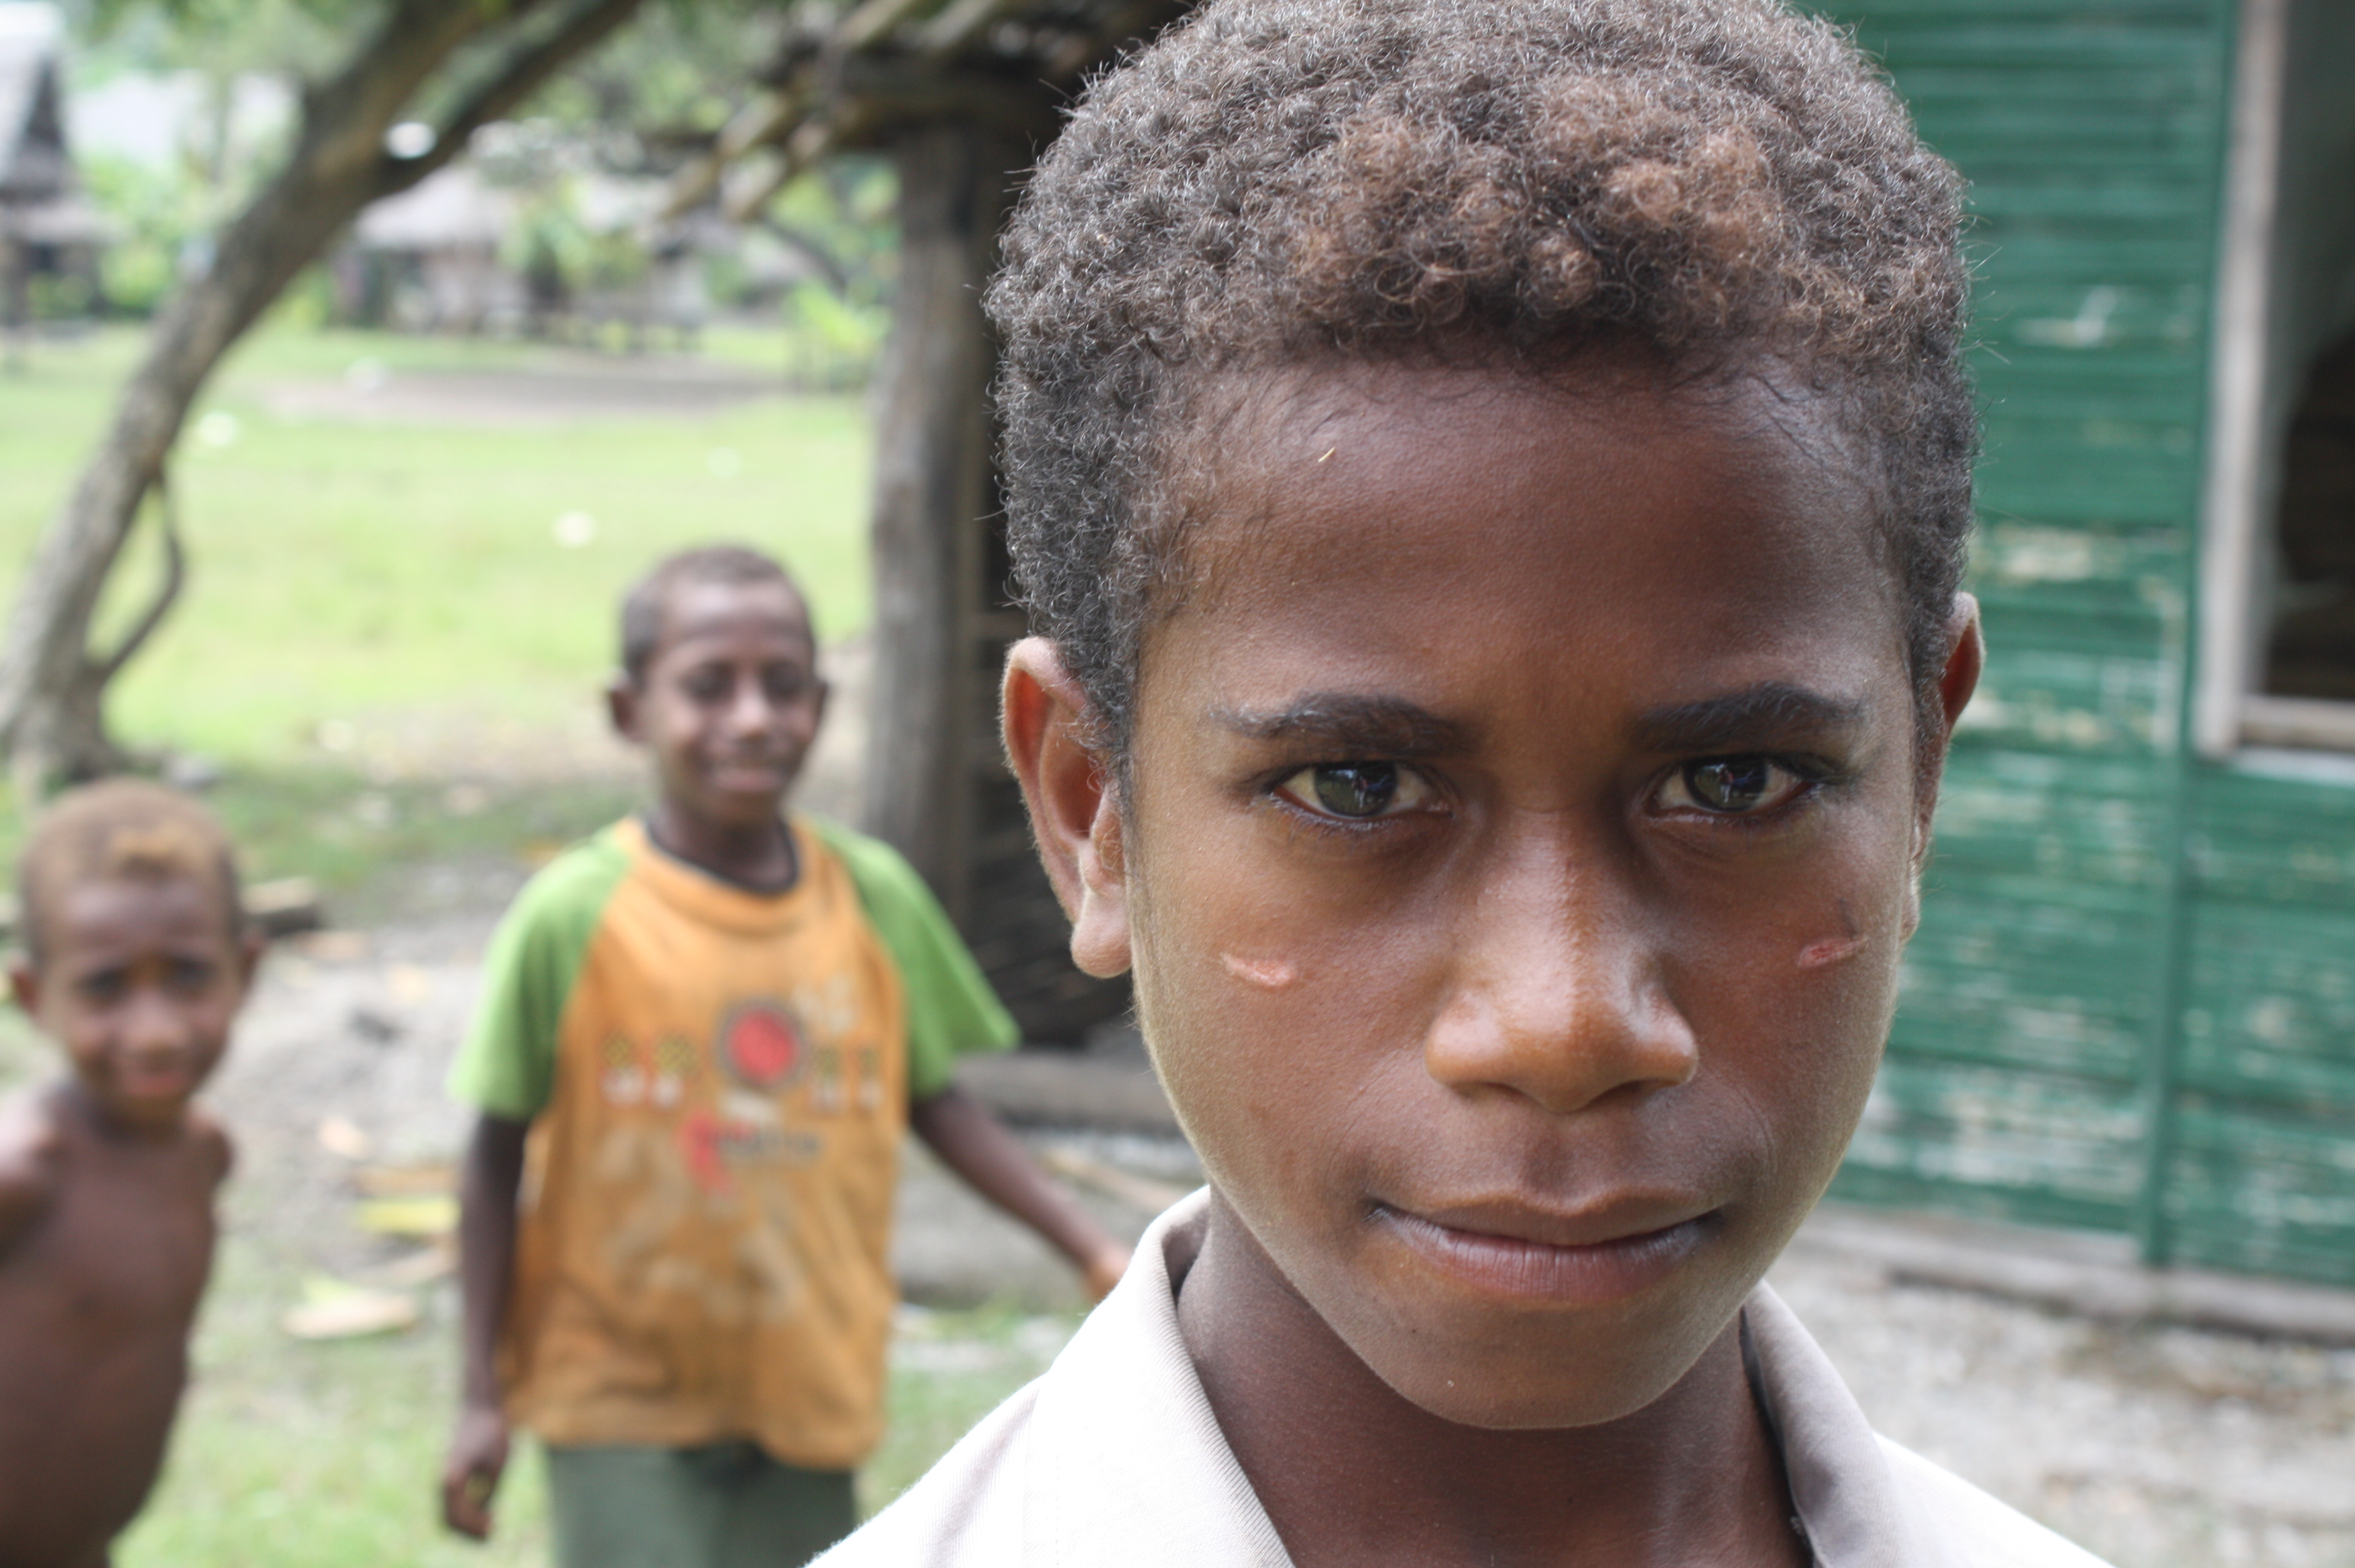 A young boy at the Mangem IDP centre in Madang. Many children are losing out on education